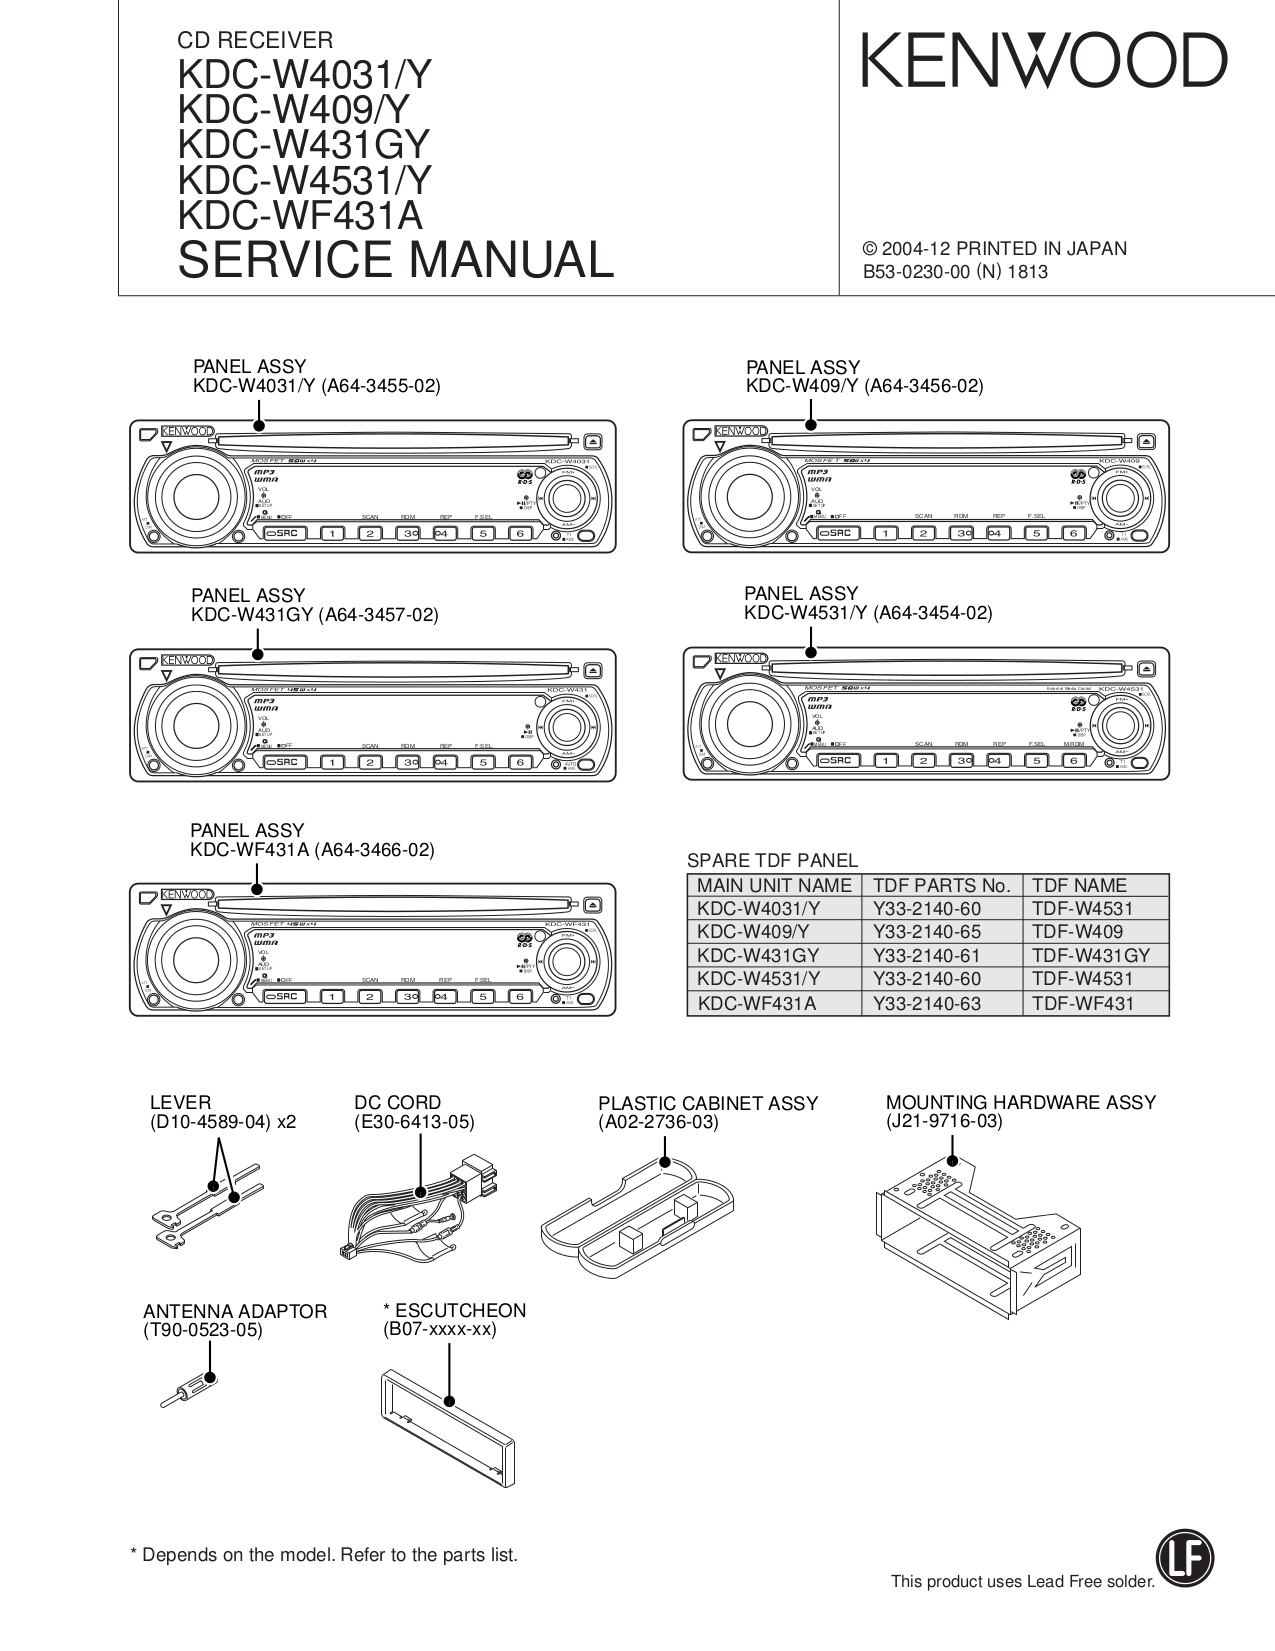 Power Window Wiring Diagram Besides Kenwood Car Radio Wiring Diagram